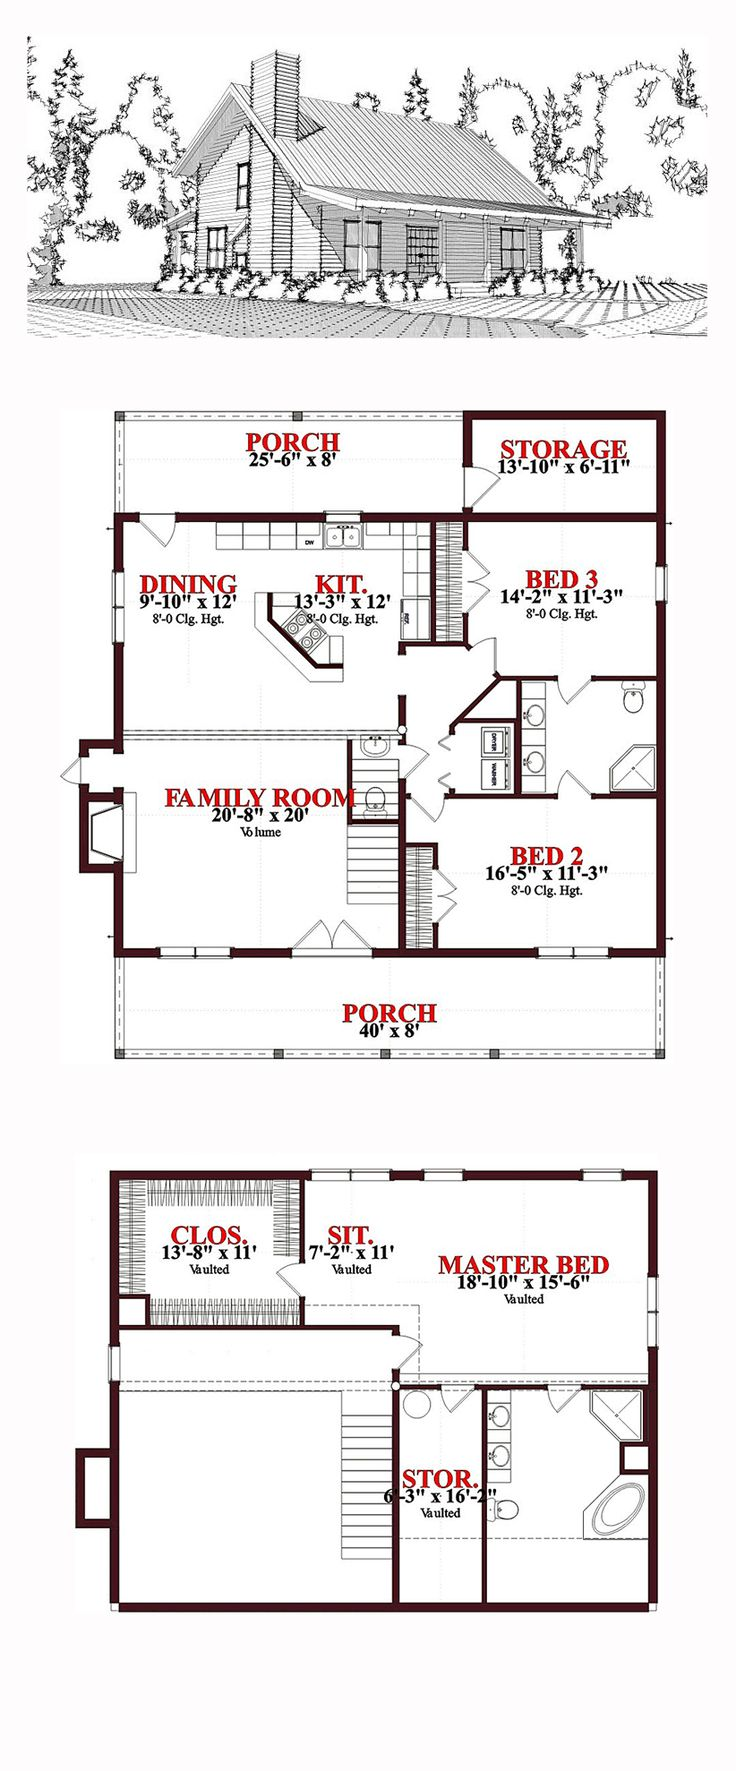 17 best images about saltbox house plans on pinterest for Saltbox house plan